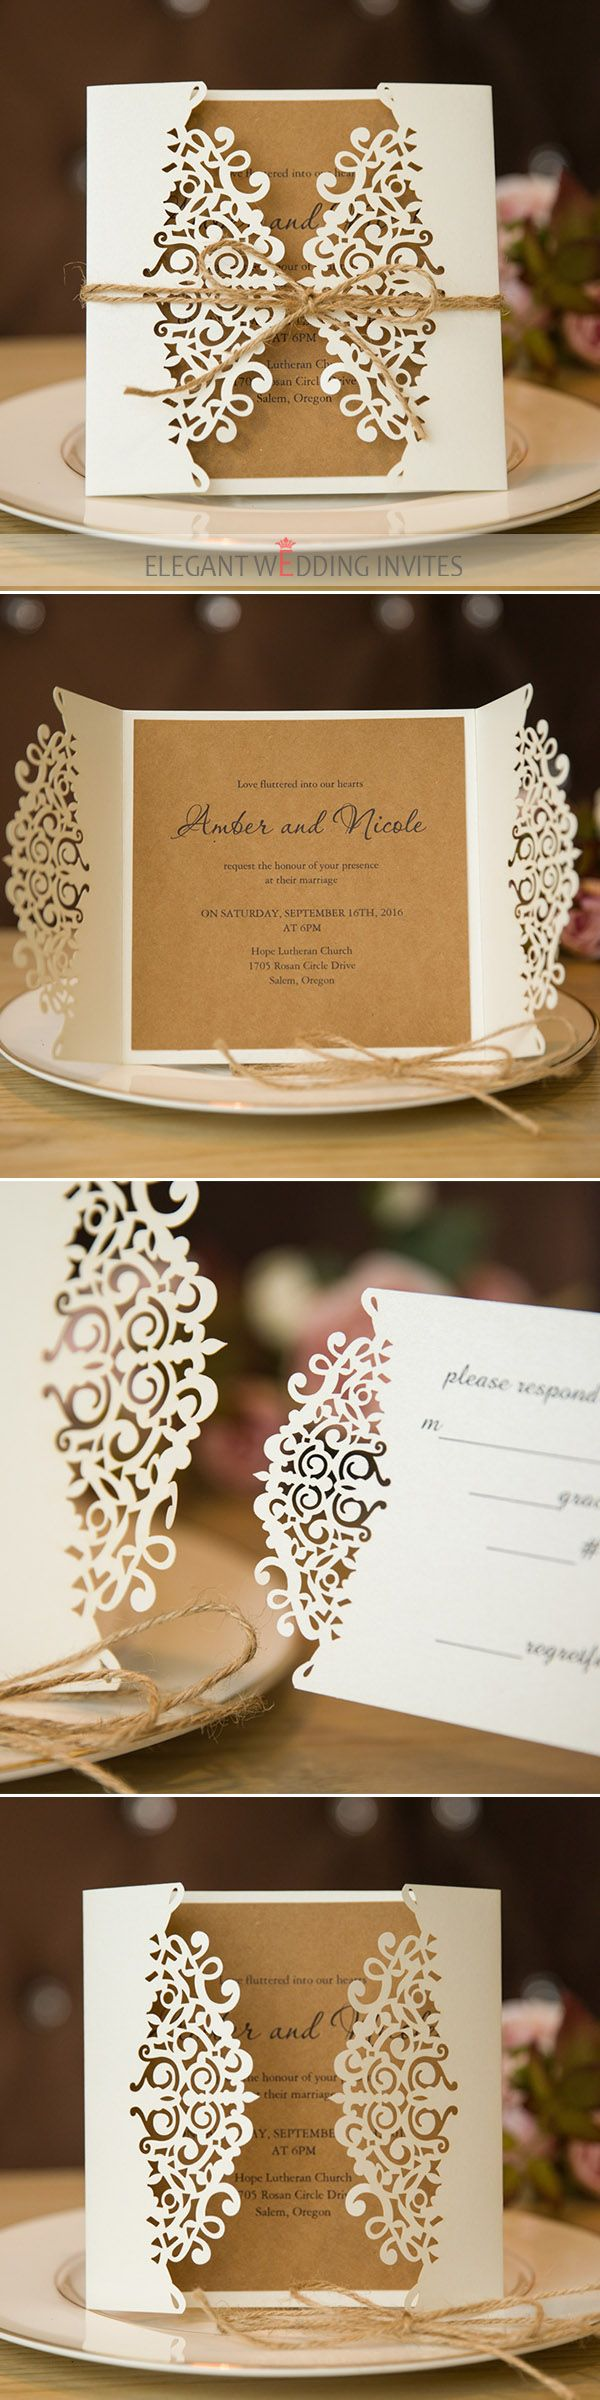 formal rustic laser cut wedding invitation cards